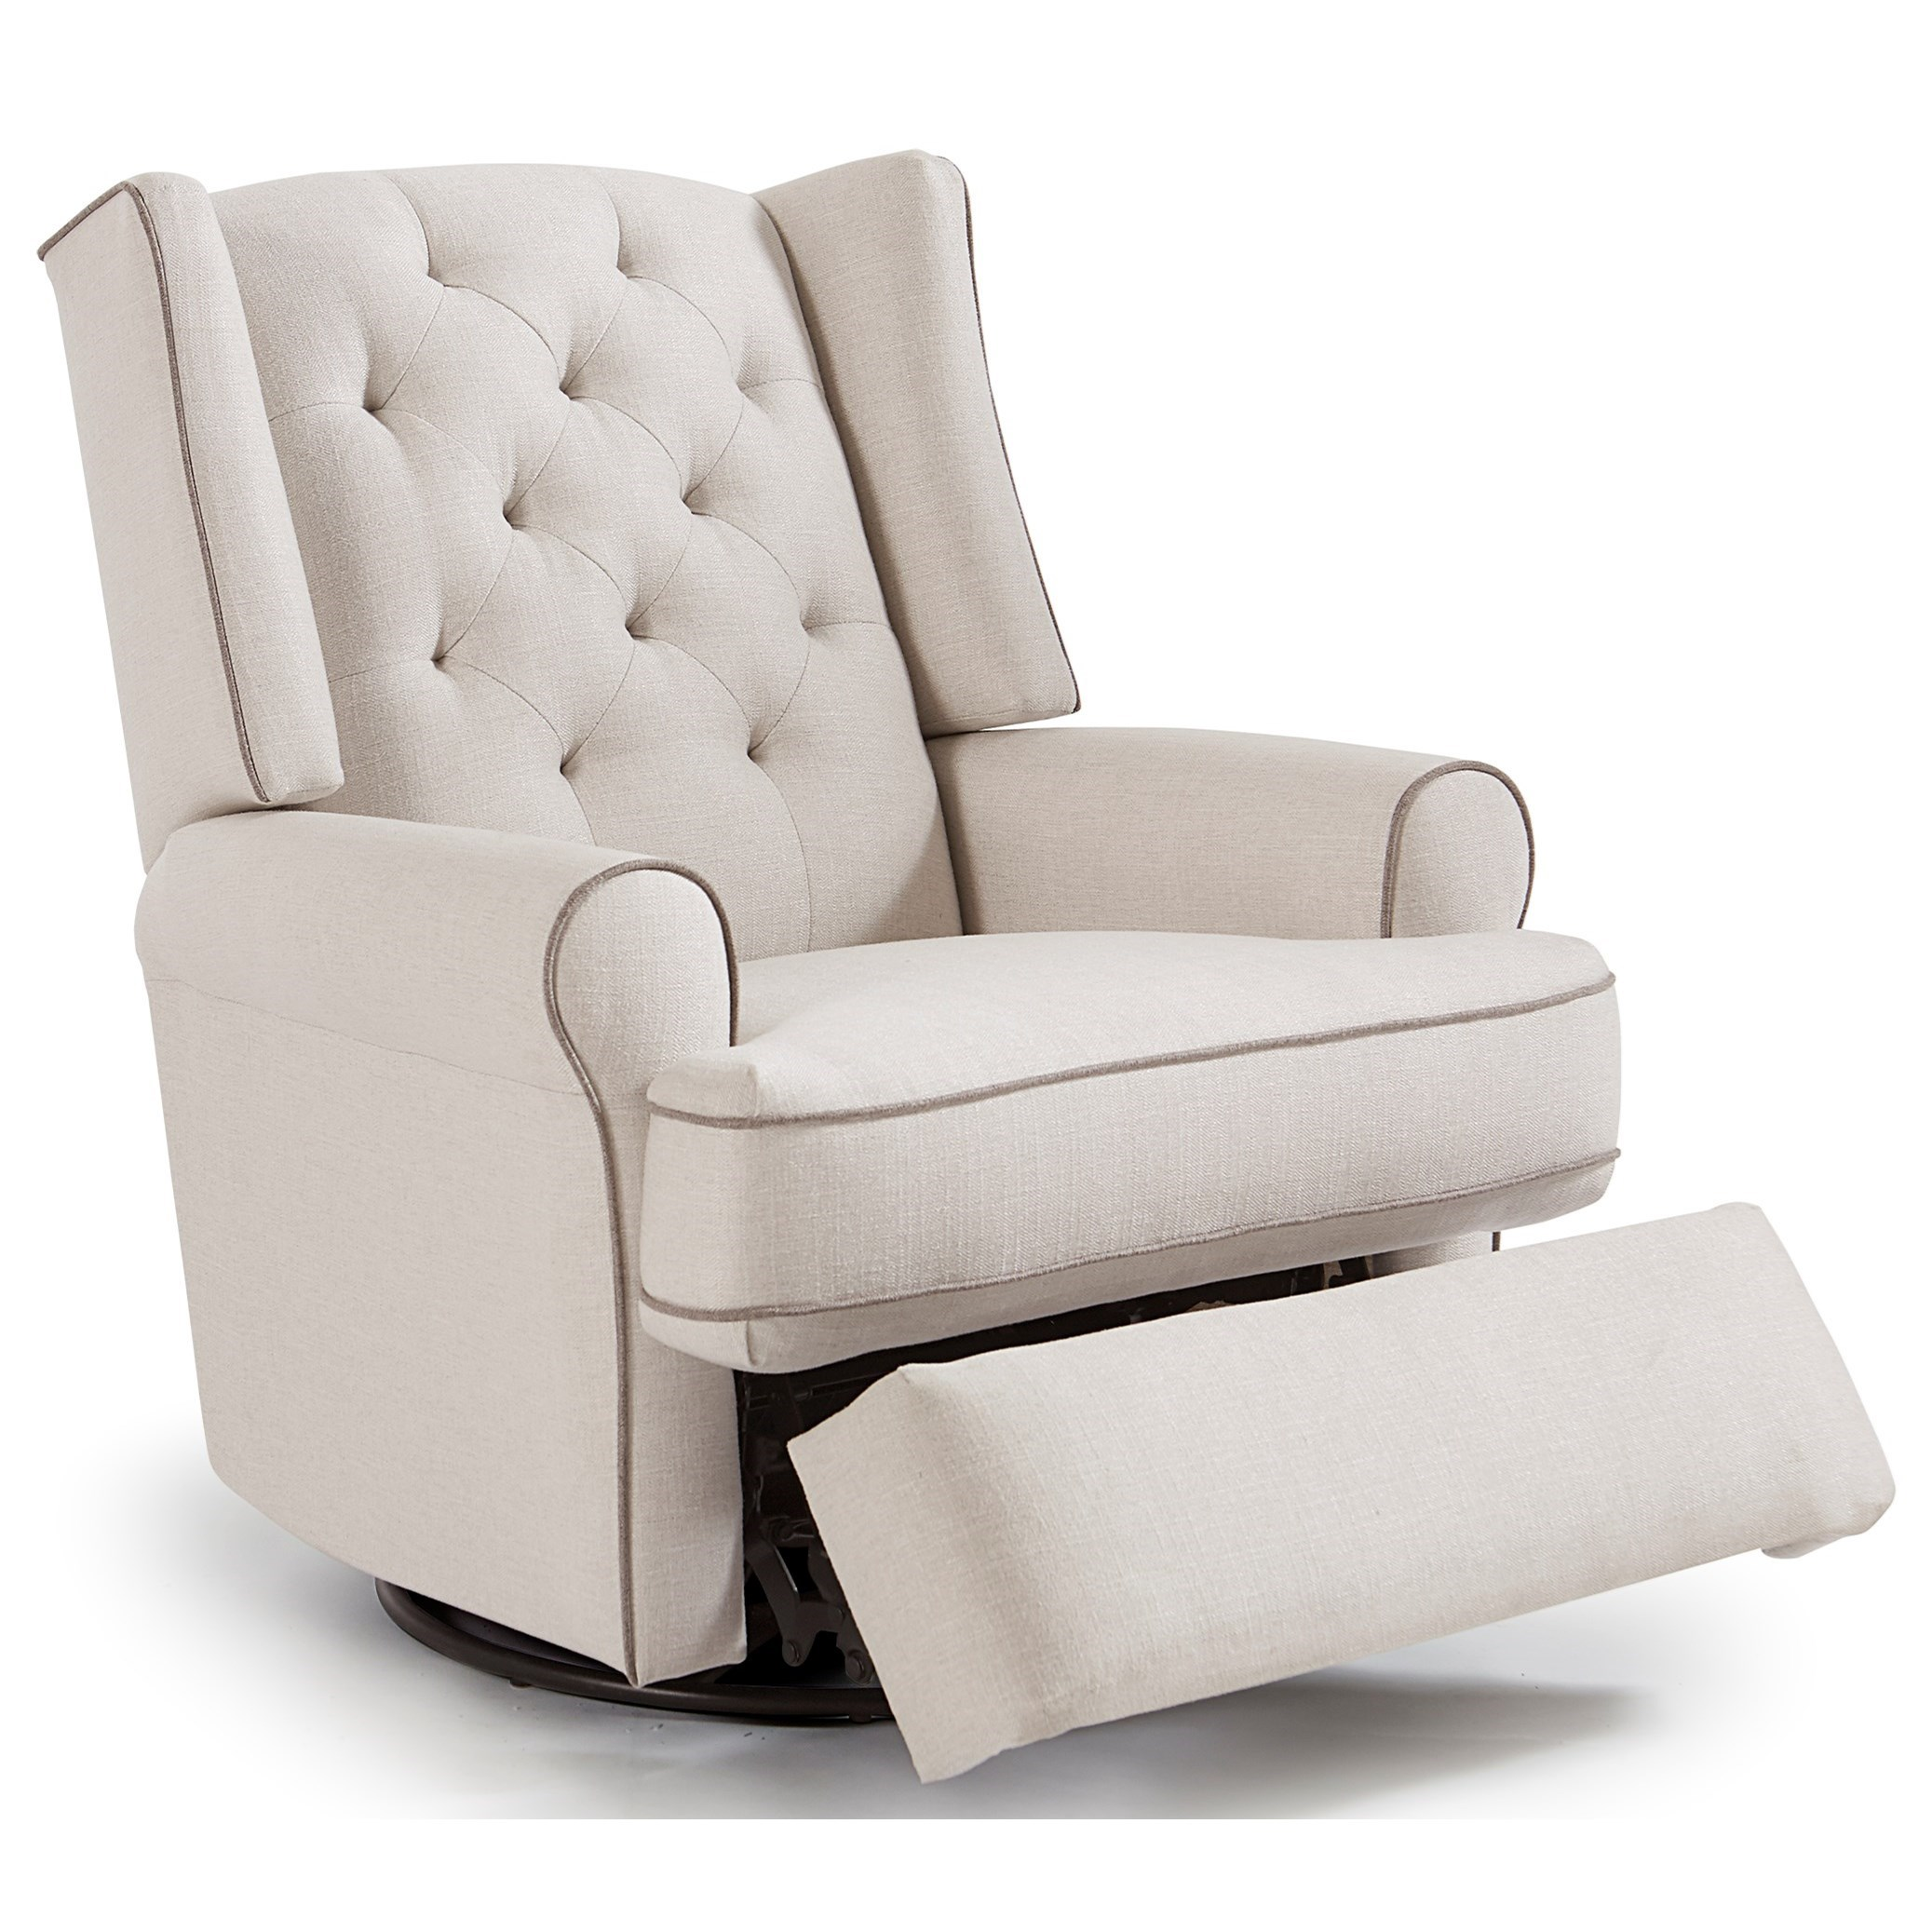 best chairs swivel glider recliner stretch dining chair covers nz home furnishings kendra 5ni85 traditional tufted